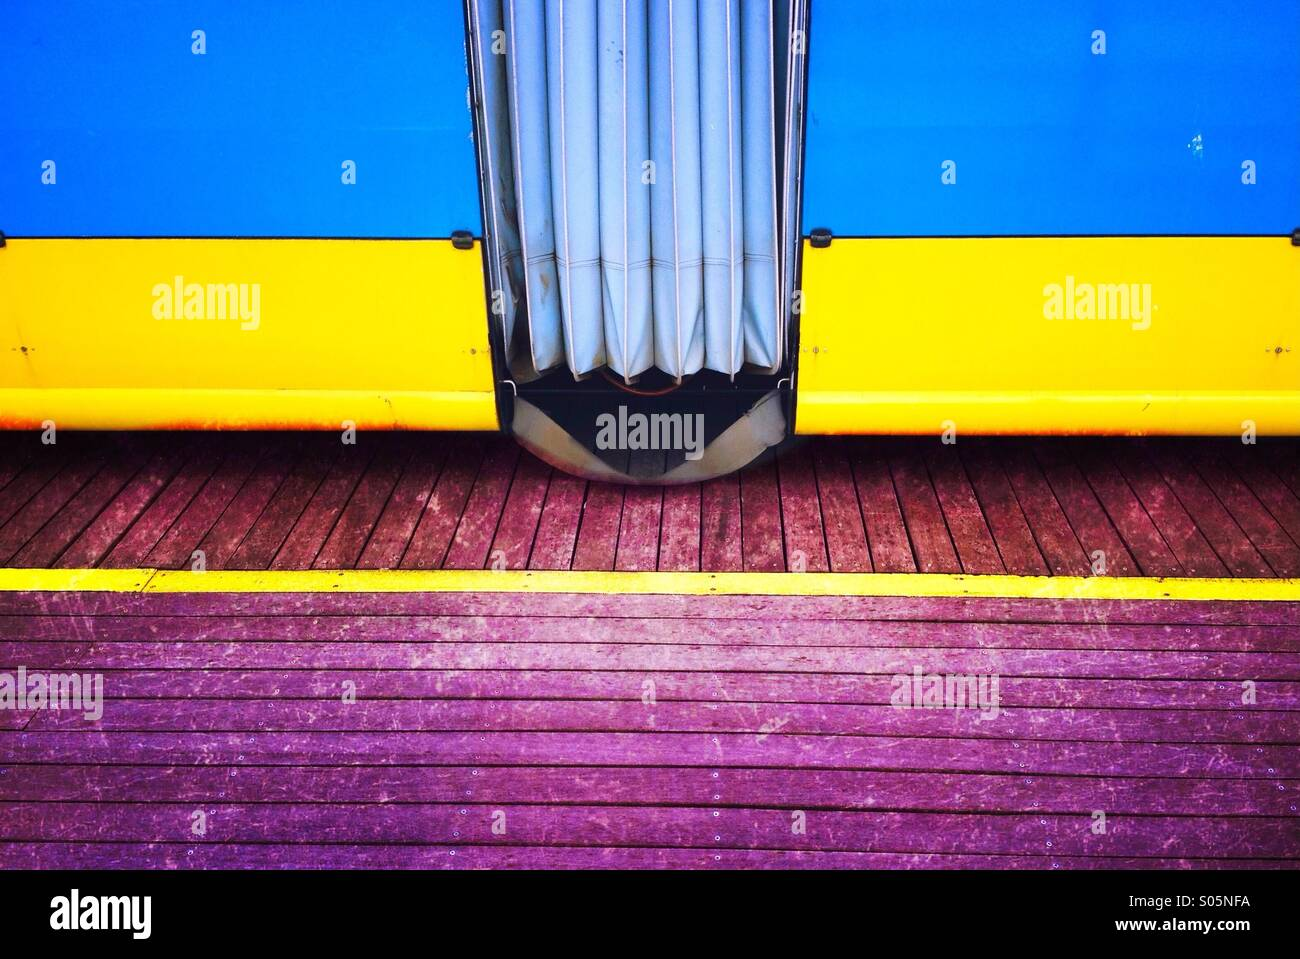 Detail of two tram coaches and yellow warning line - Stock Image